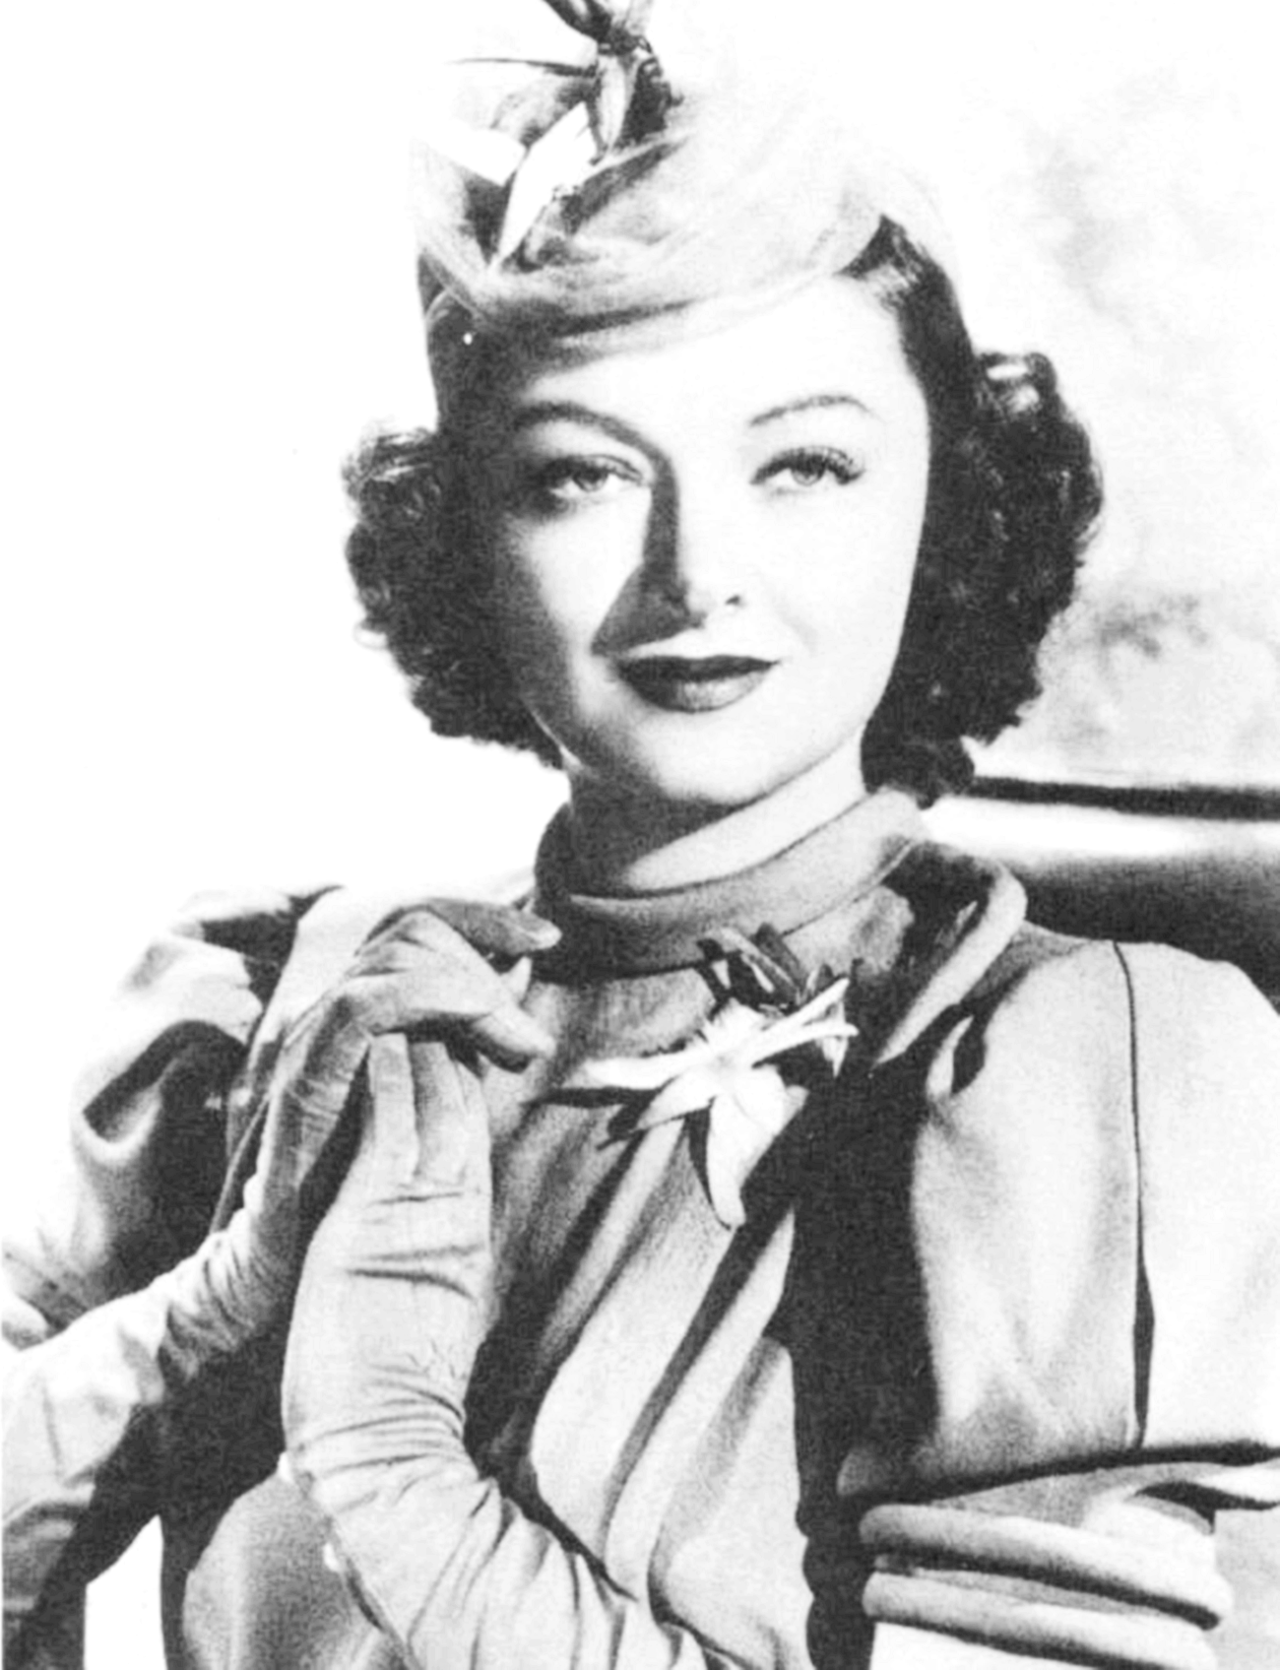 Pin by Amanda Sexton on Myrna Loy: Queen of Hollywood